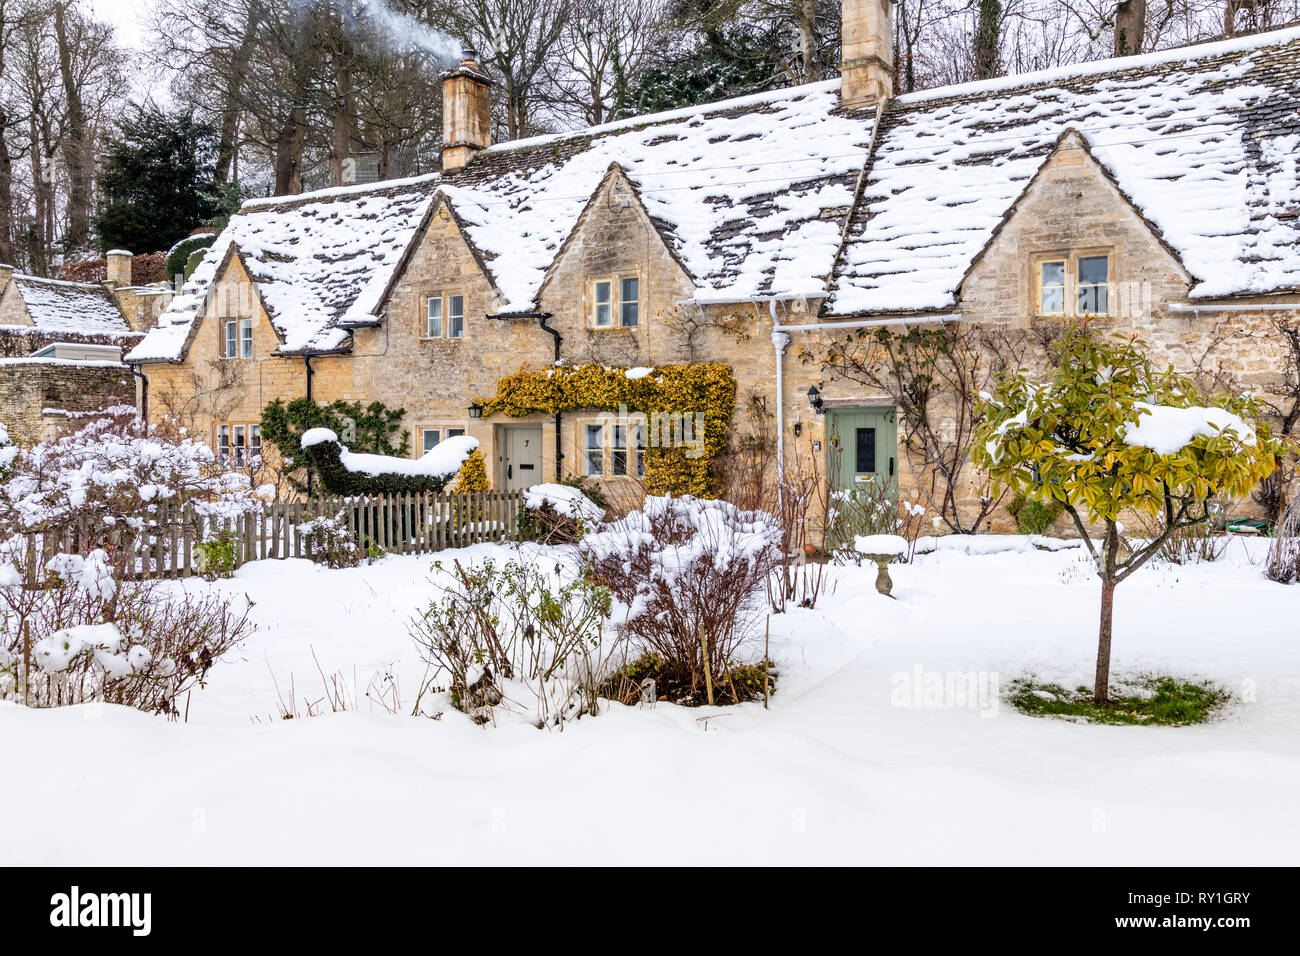 Cotswold stone cottages and gardens covered with snow at Bibury, Gloucestershire UK - Stock Image